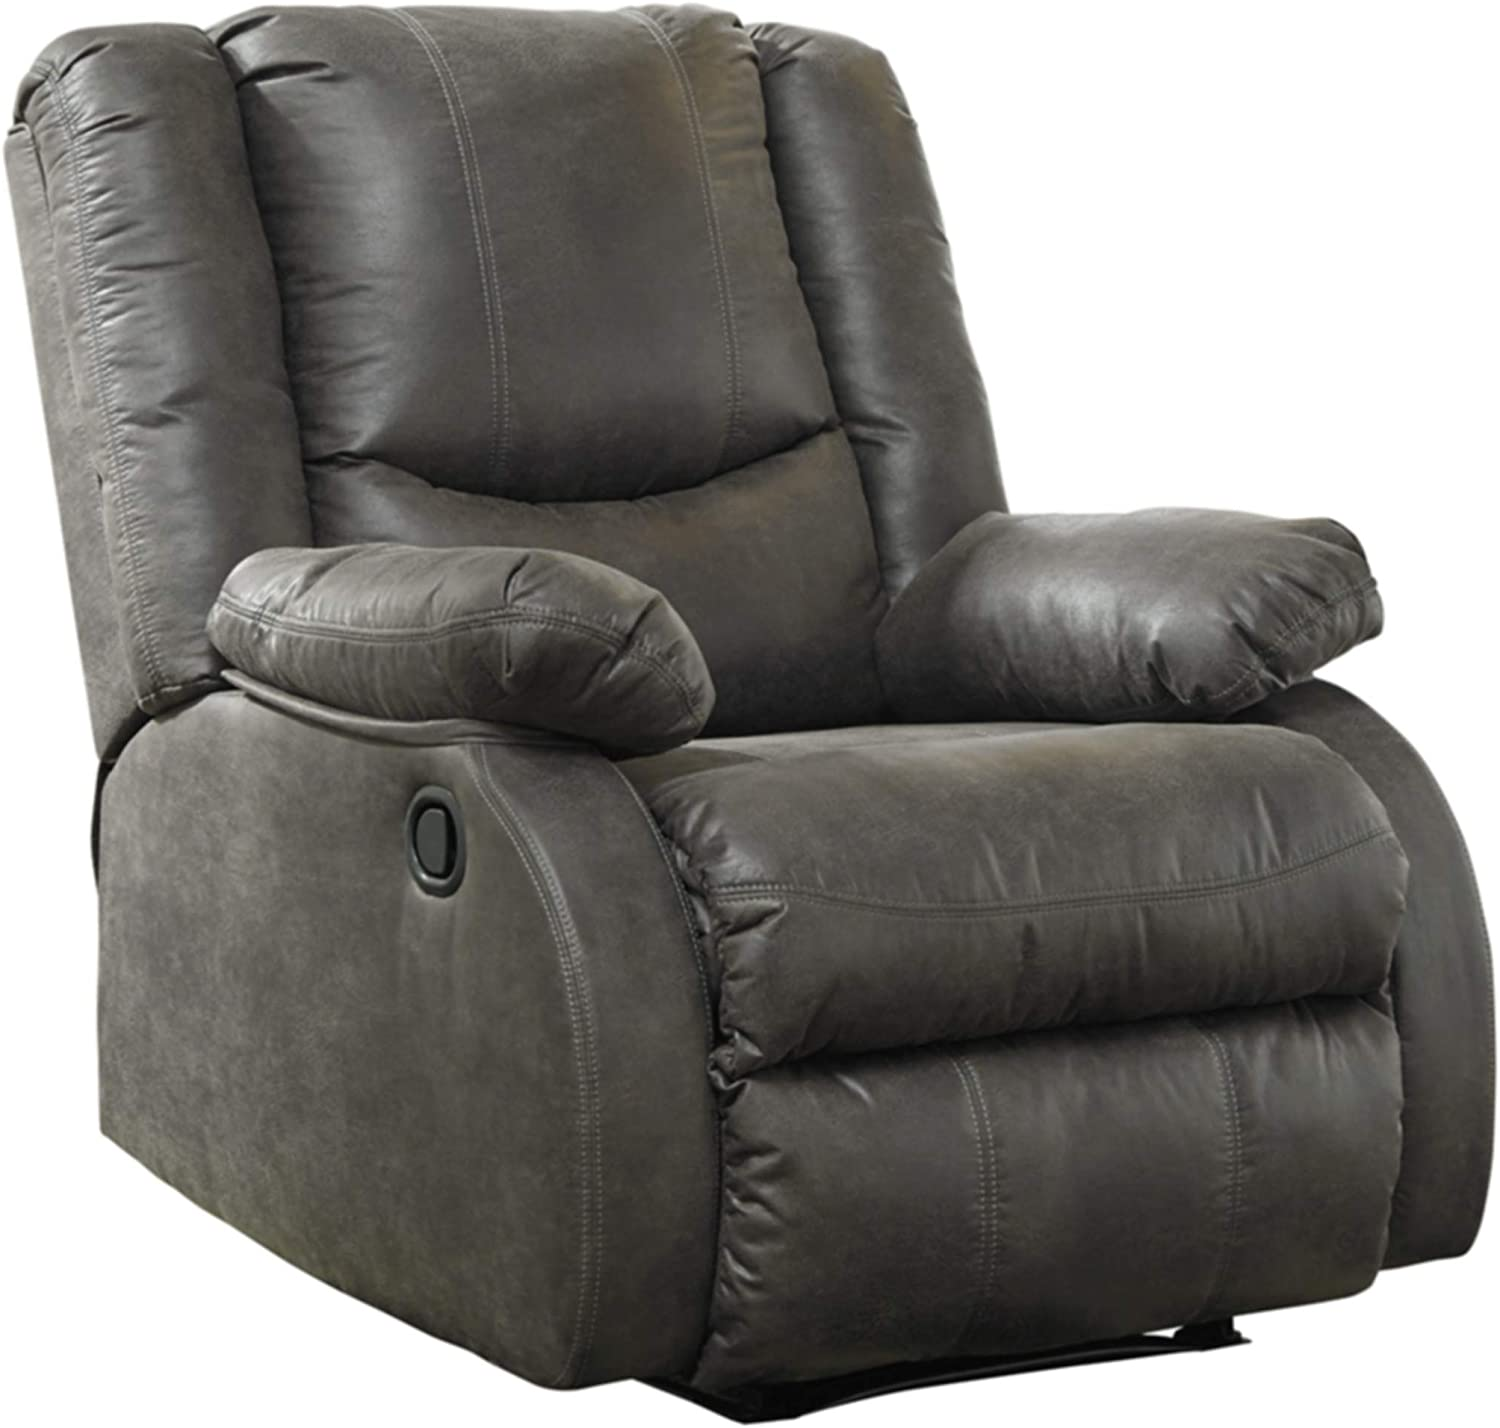 Signature Design by Ashley - Bladewood Casual Faux Leather Zero Wall Recliner - Pull Tab Reclining - Gray